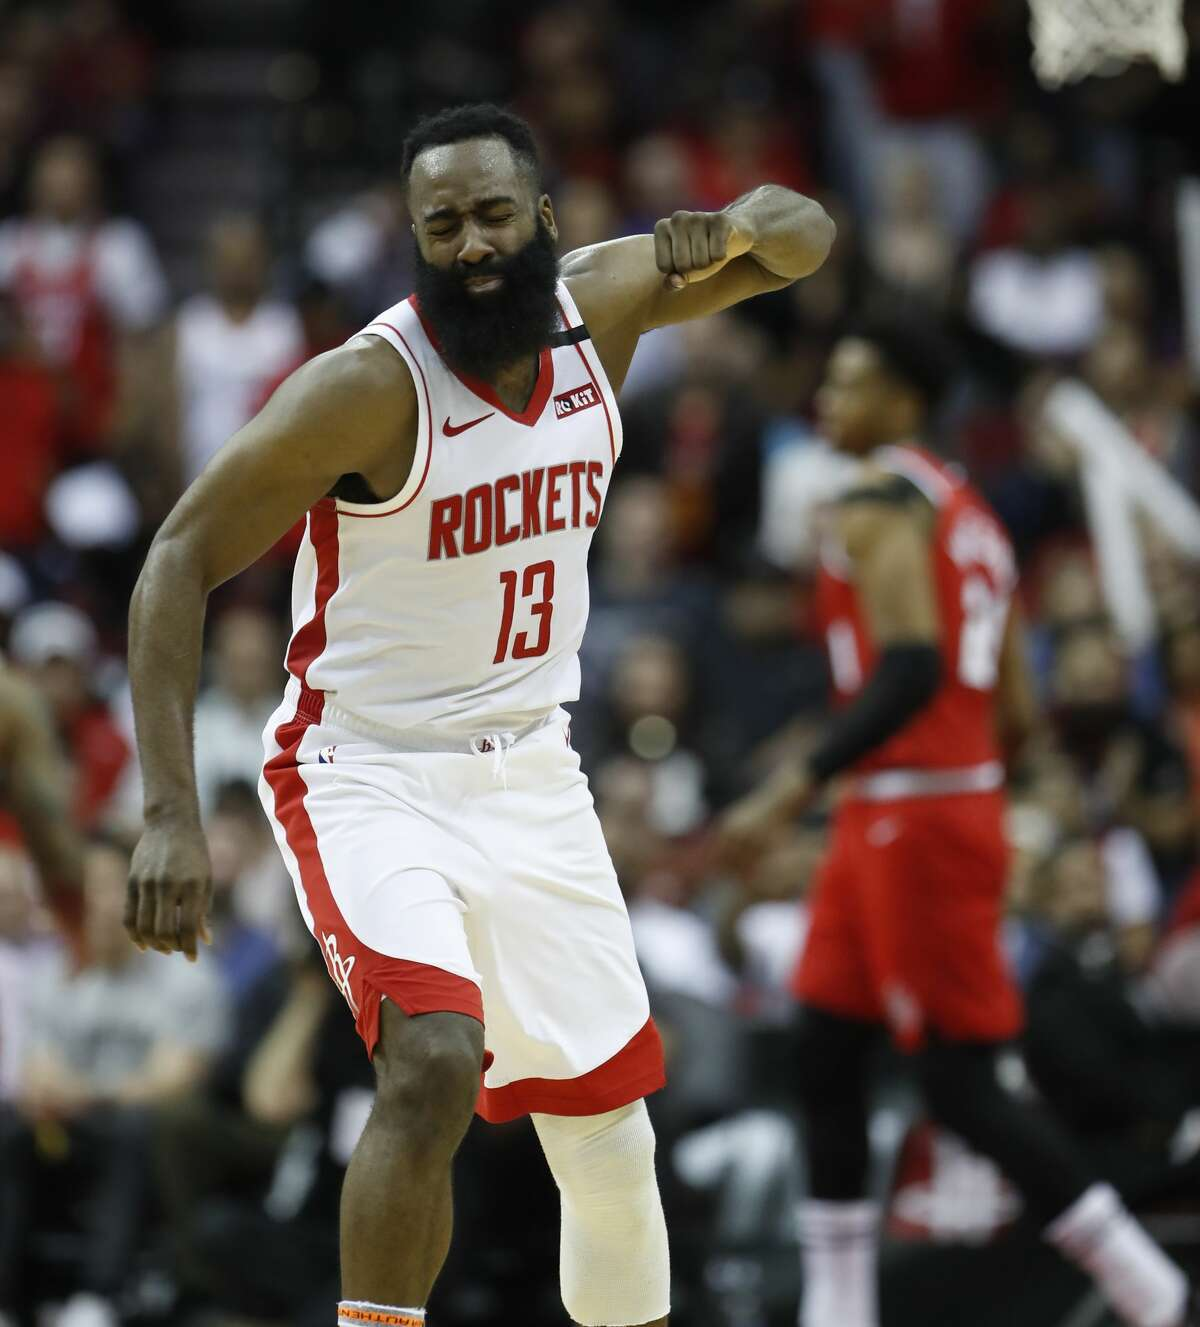 Houston Rockets guard James Harden (13) reacts after missing a three-pointer in the second half of an NBA basketball game at Toyota Center, in Houston, Wednesday, Jan. 15, 2020.